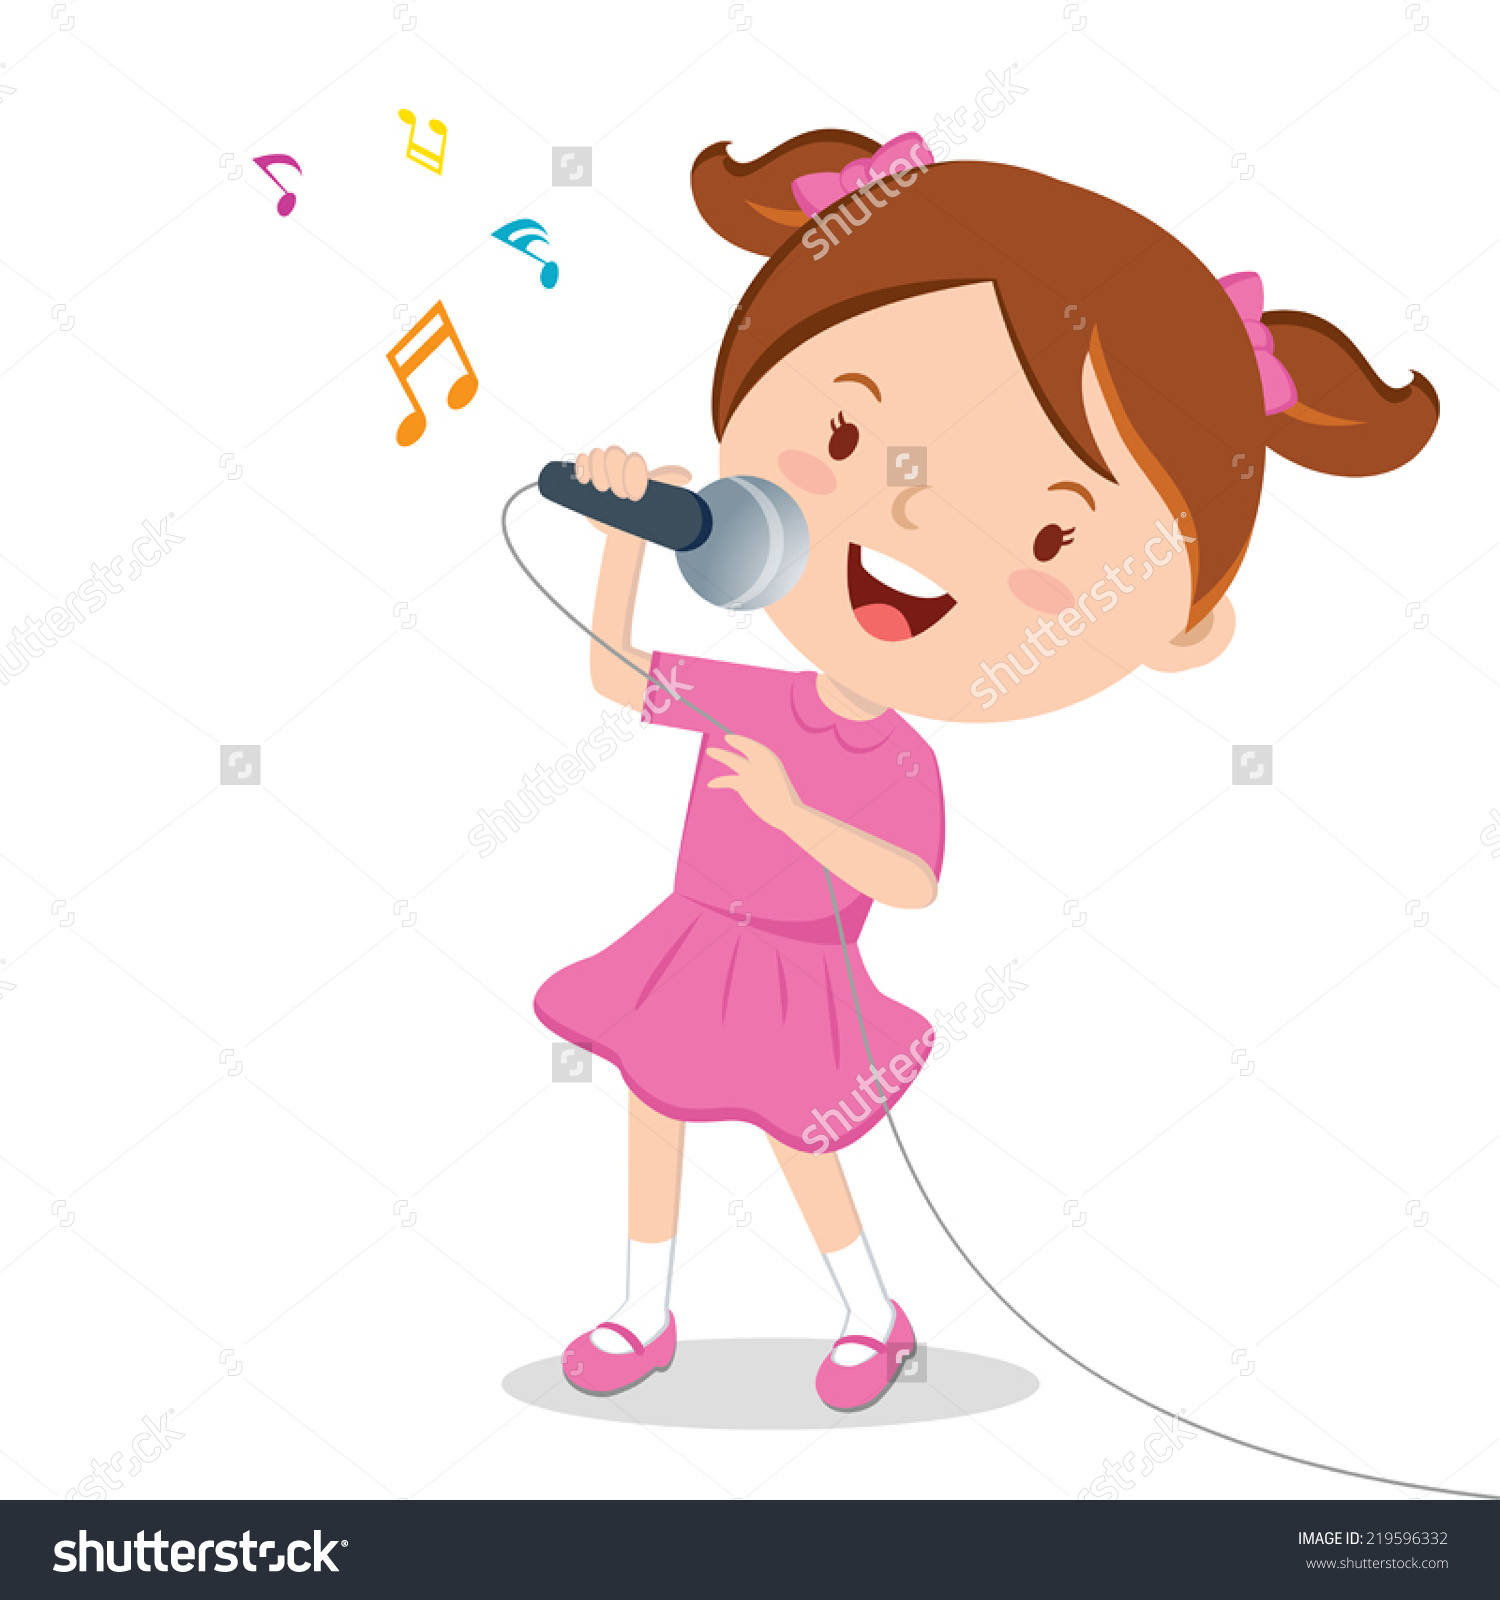 Singer clipart female singer A  clipart images Collection